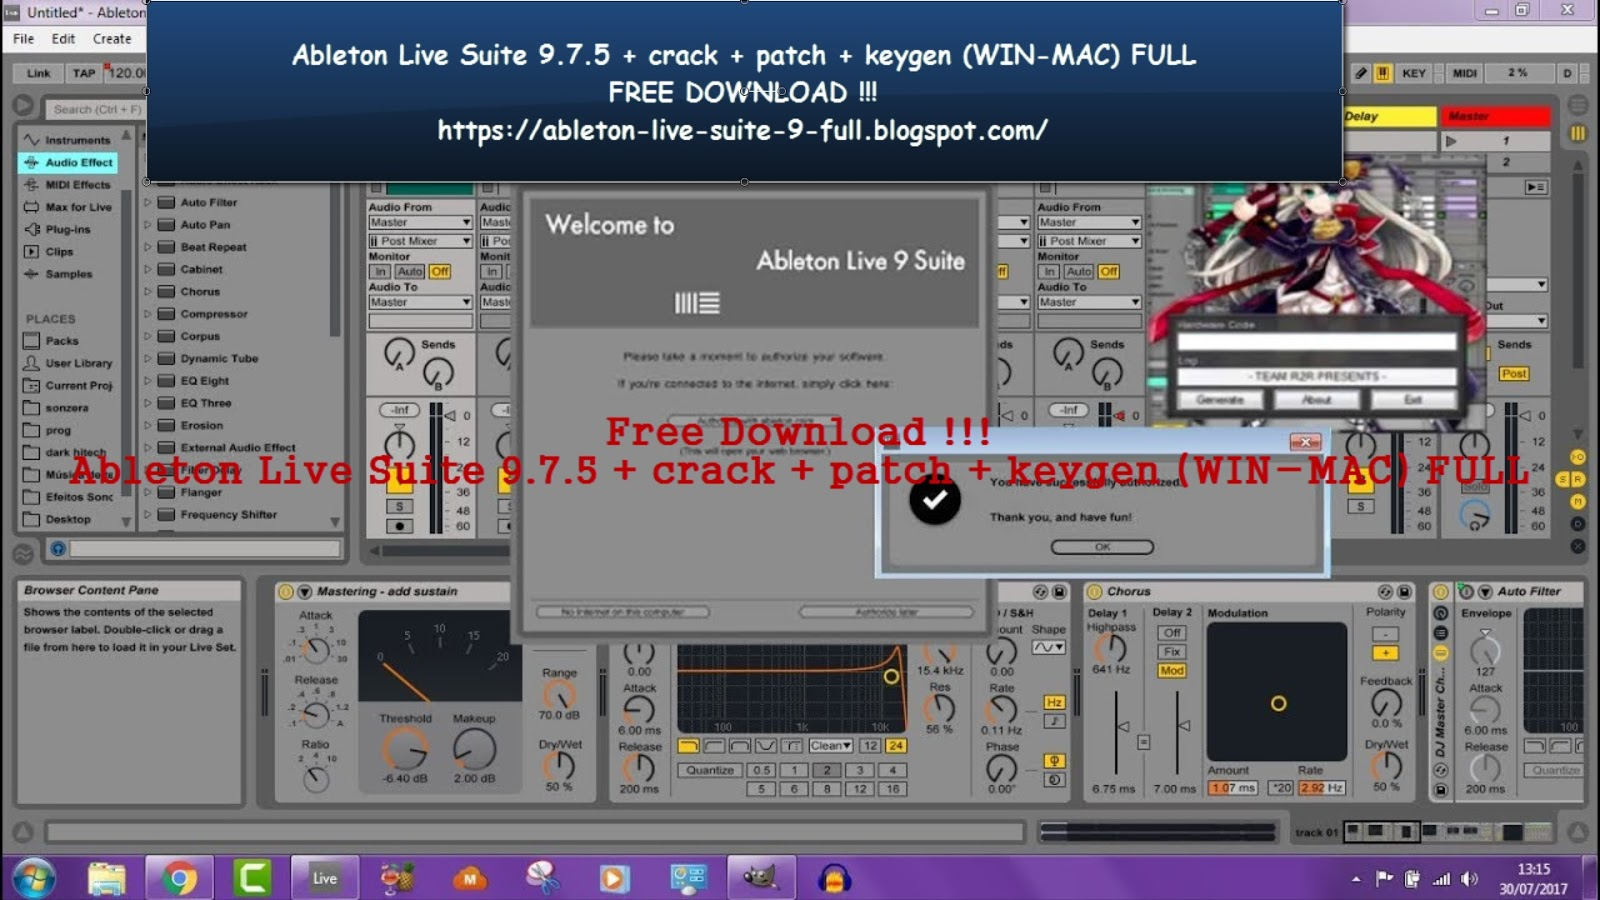 ableton live 9 cracked mac